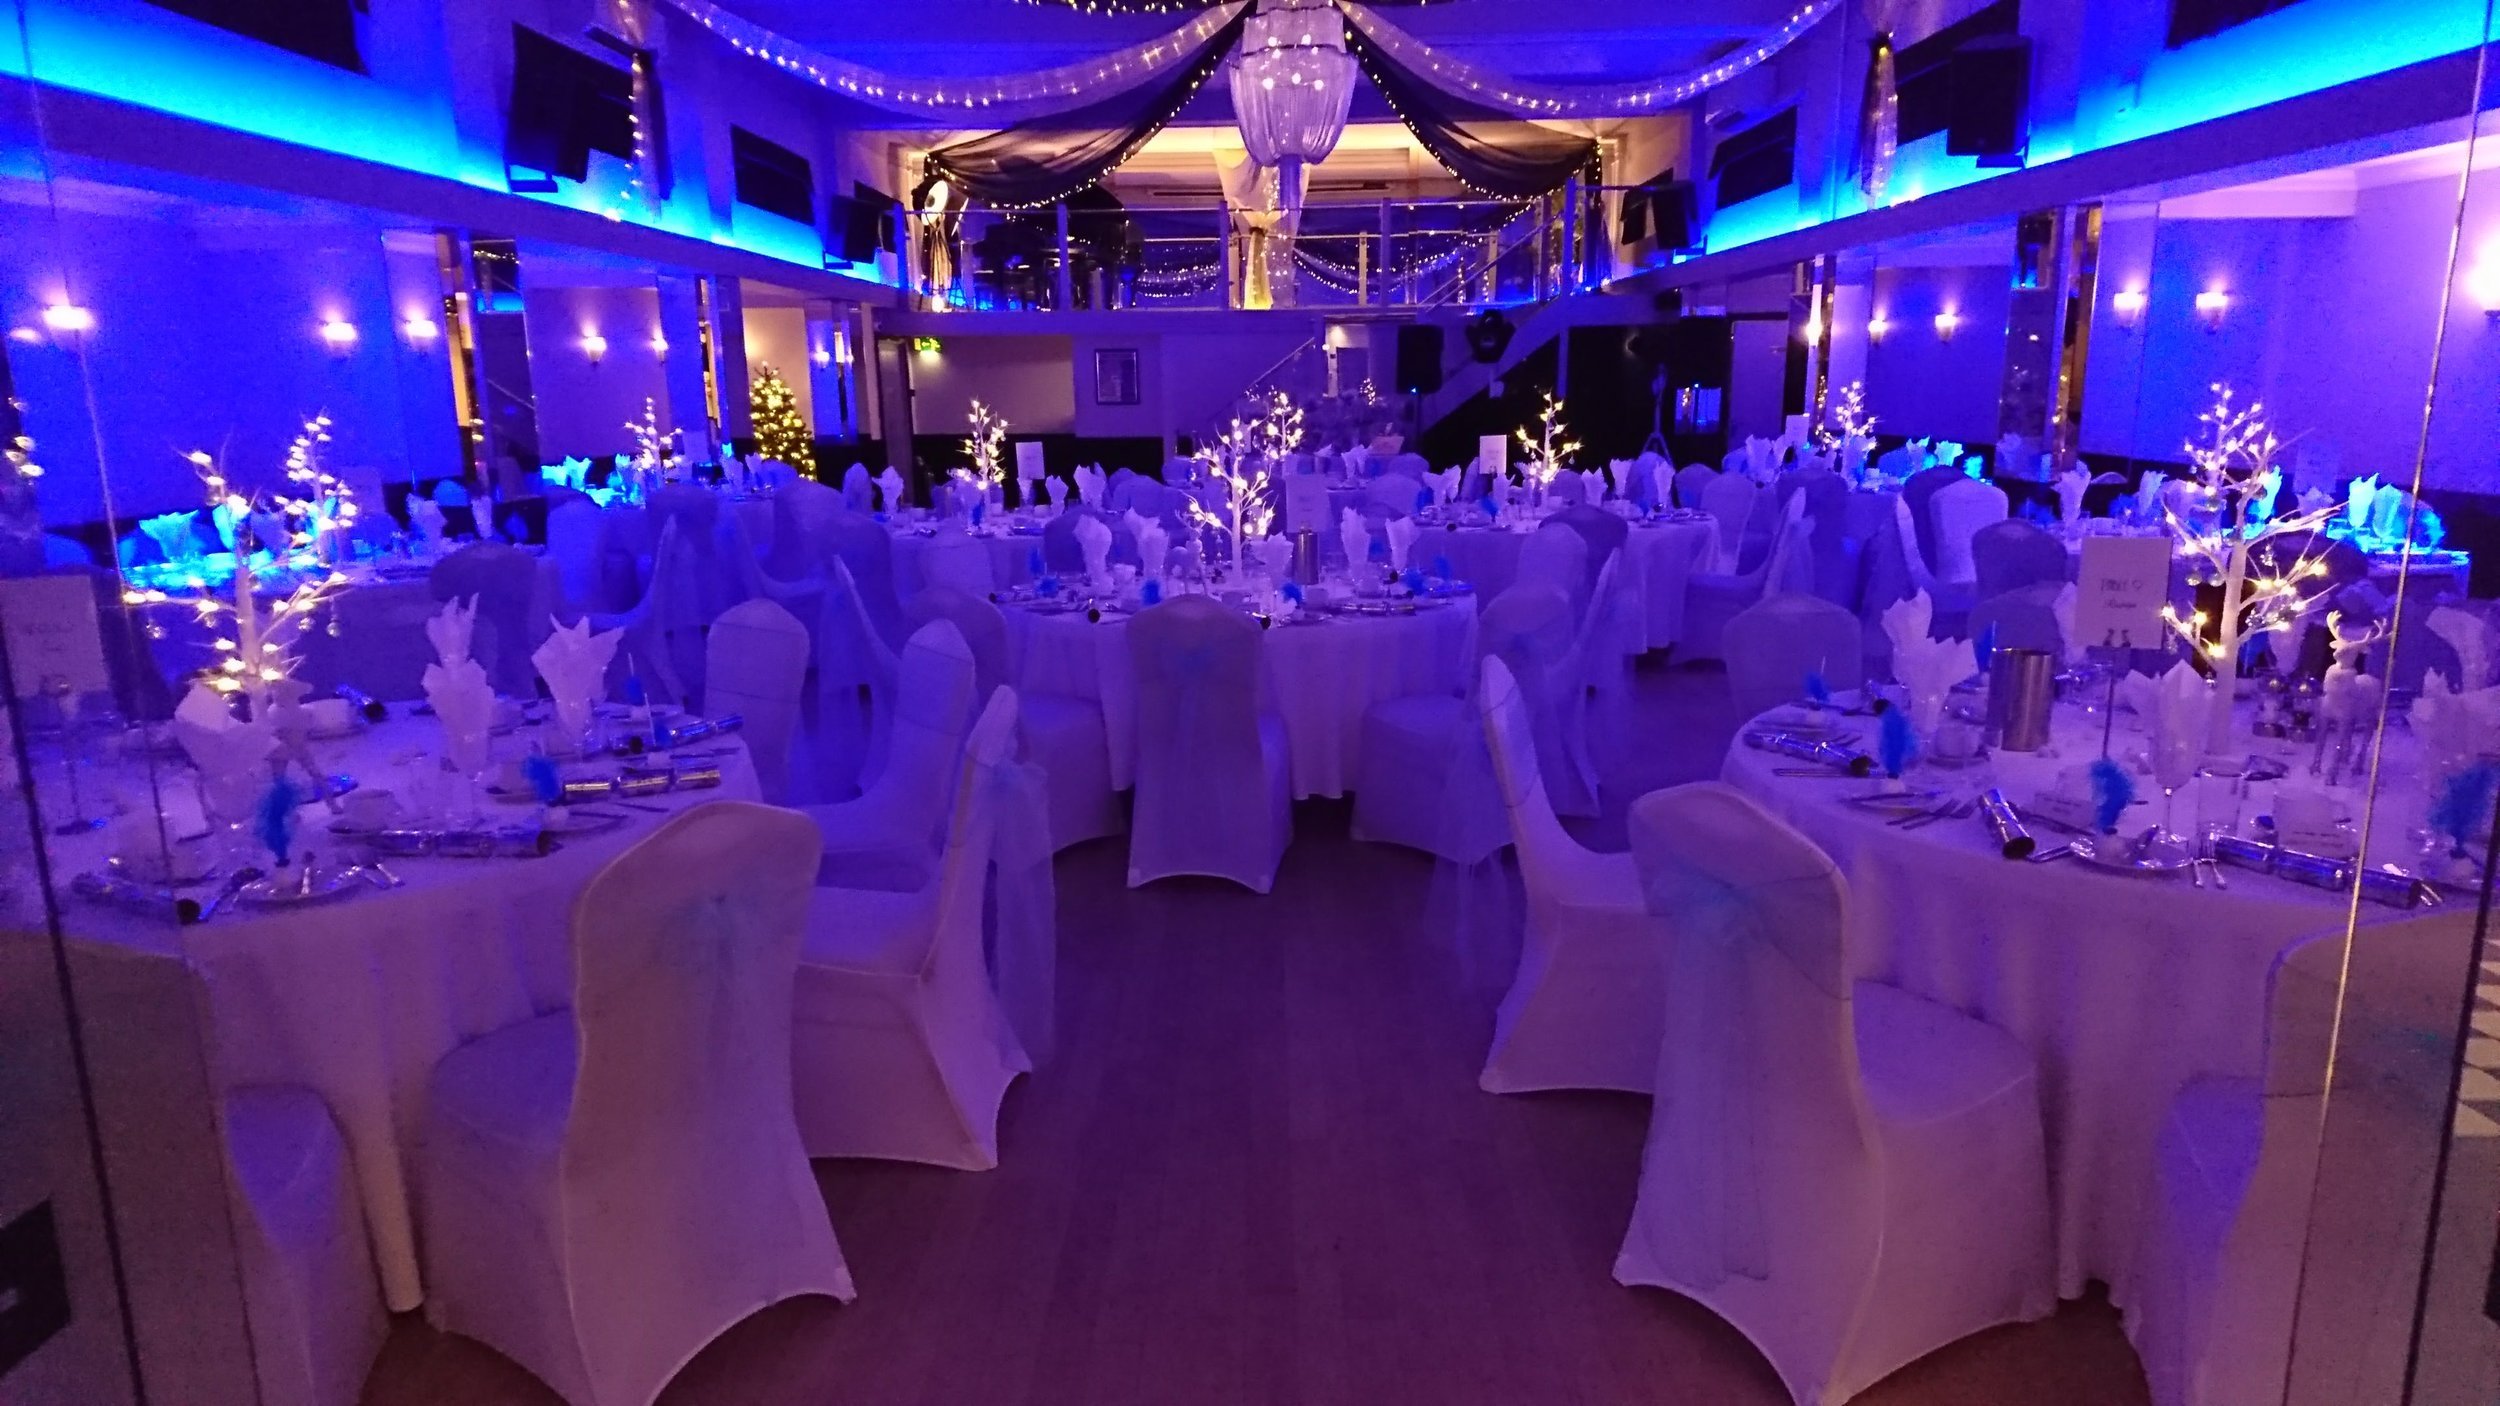 Inside the Arlington Ballroom Blue Themed Wedding